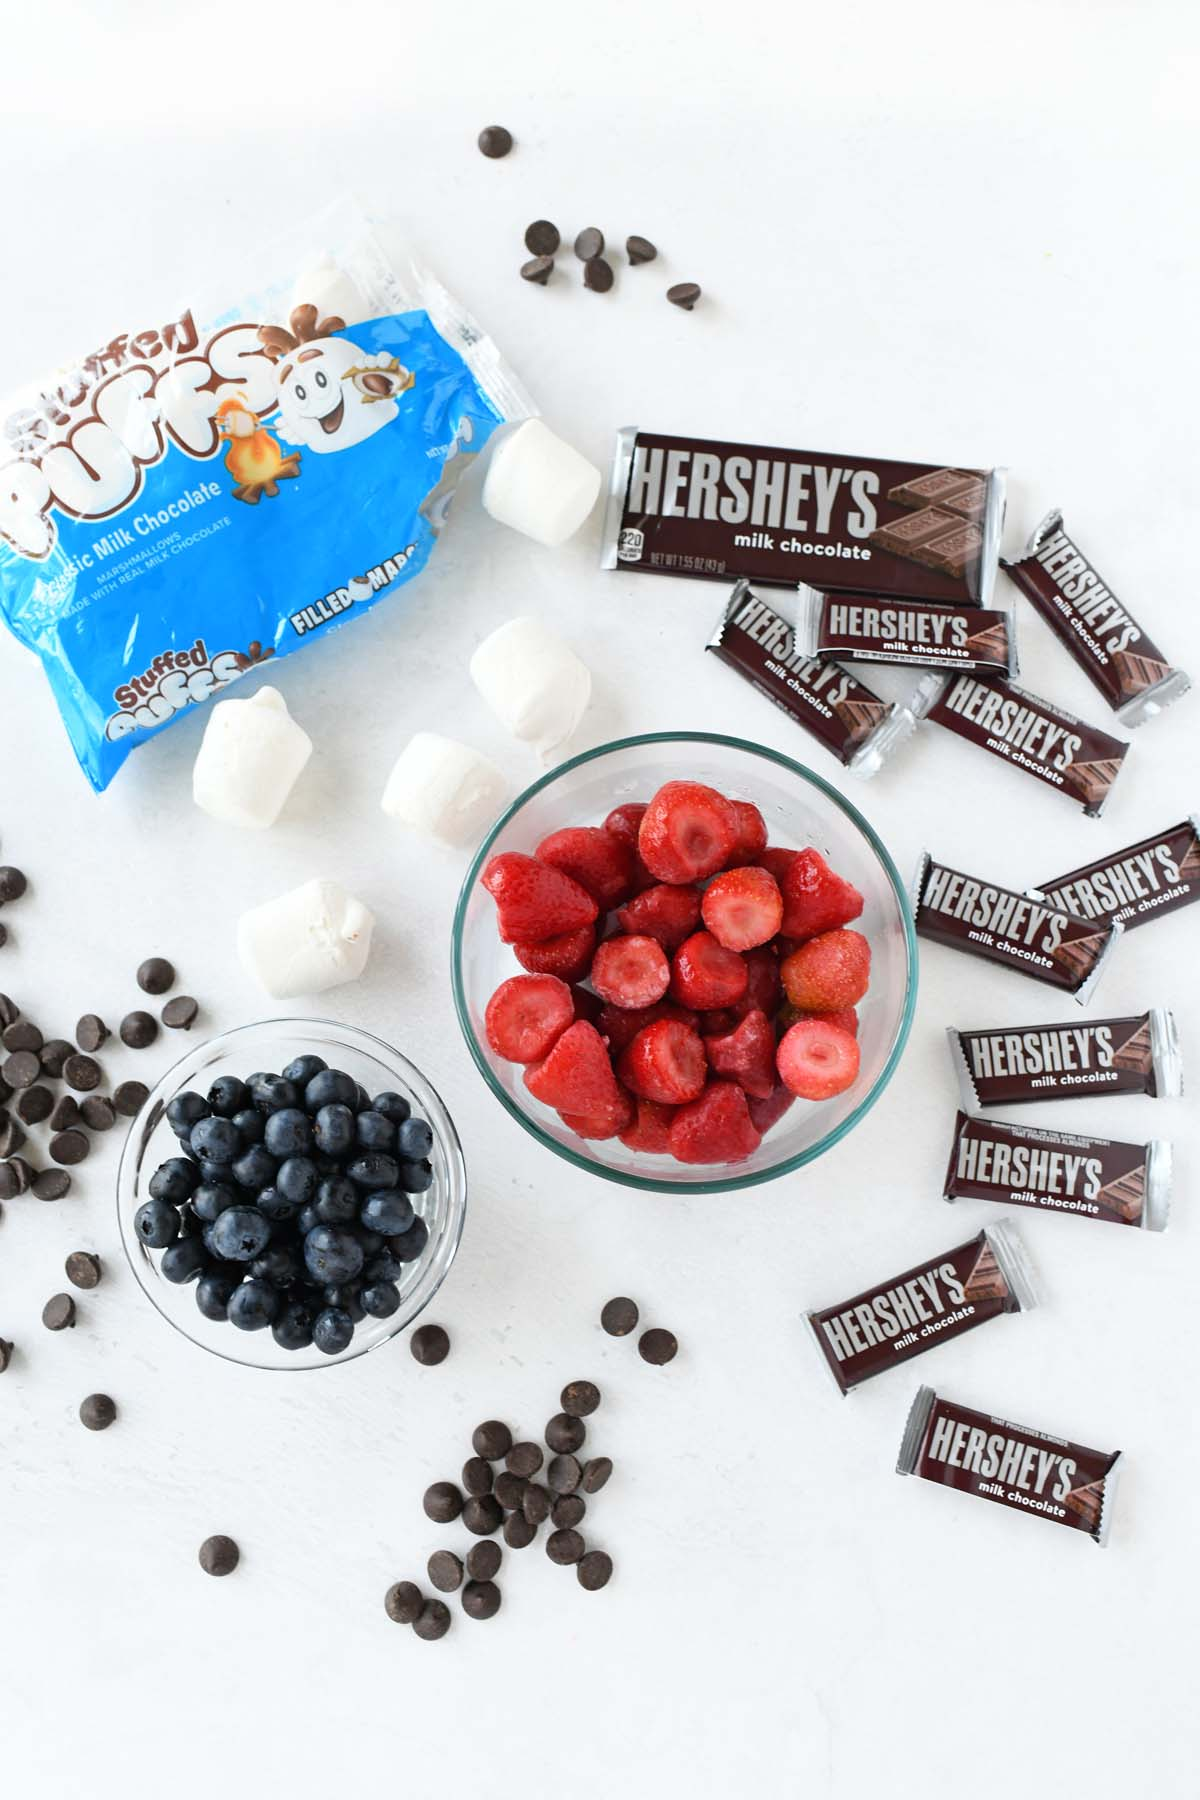 S'mores berry skillet dip ingredients on a white table.